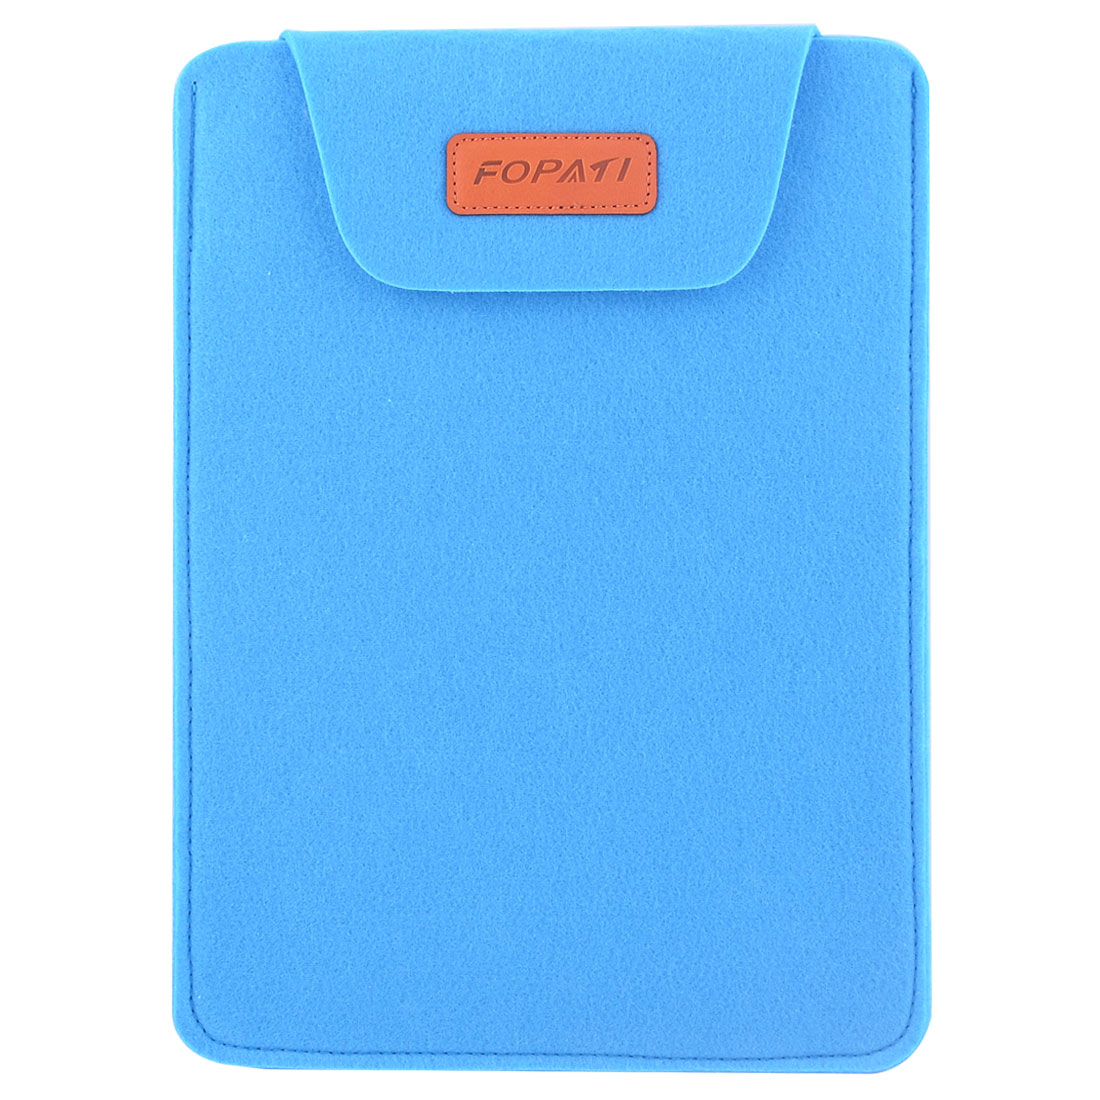 PC Wool Felt Universal Protective Bag Notebook Sleeve Case Blue for 12 Inch Laptop